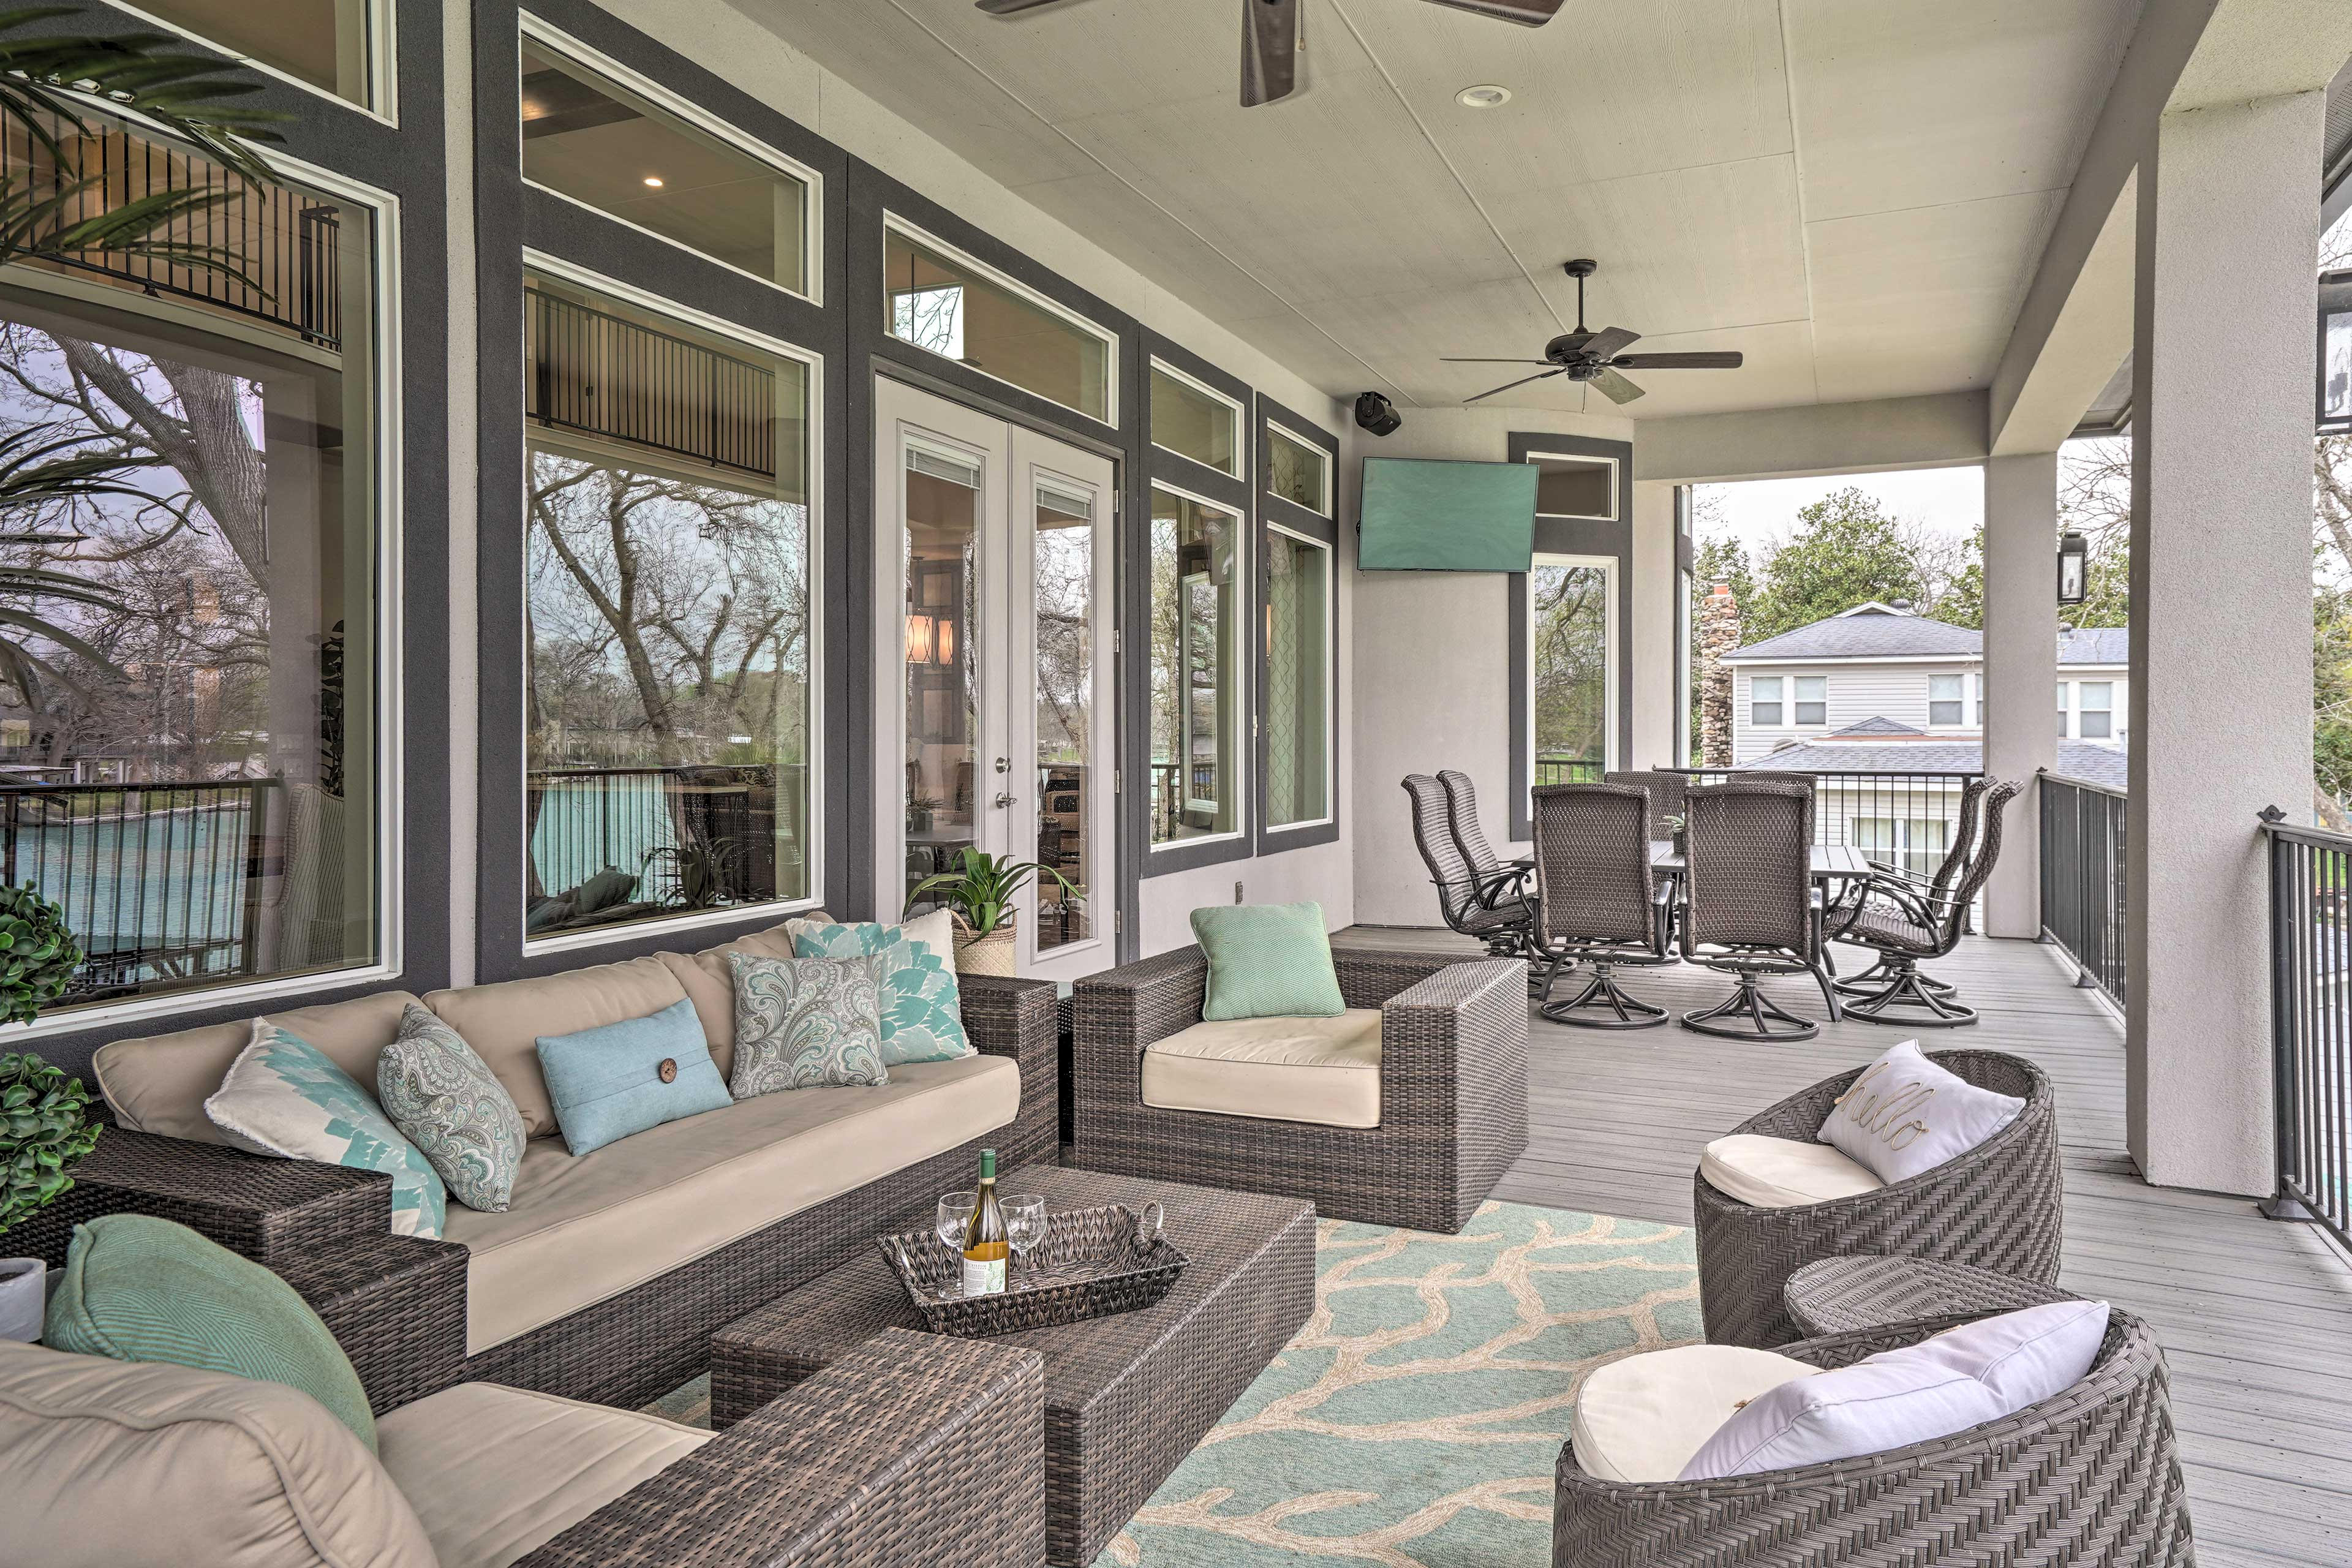 Bring snacks outside to the deck and revel in the fresh air.